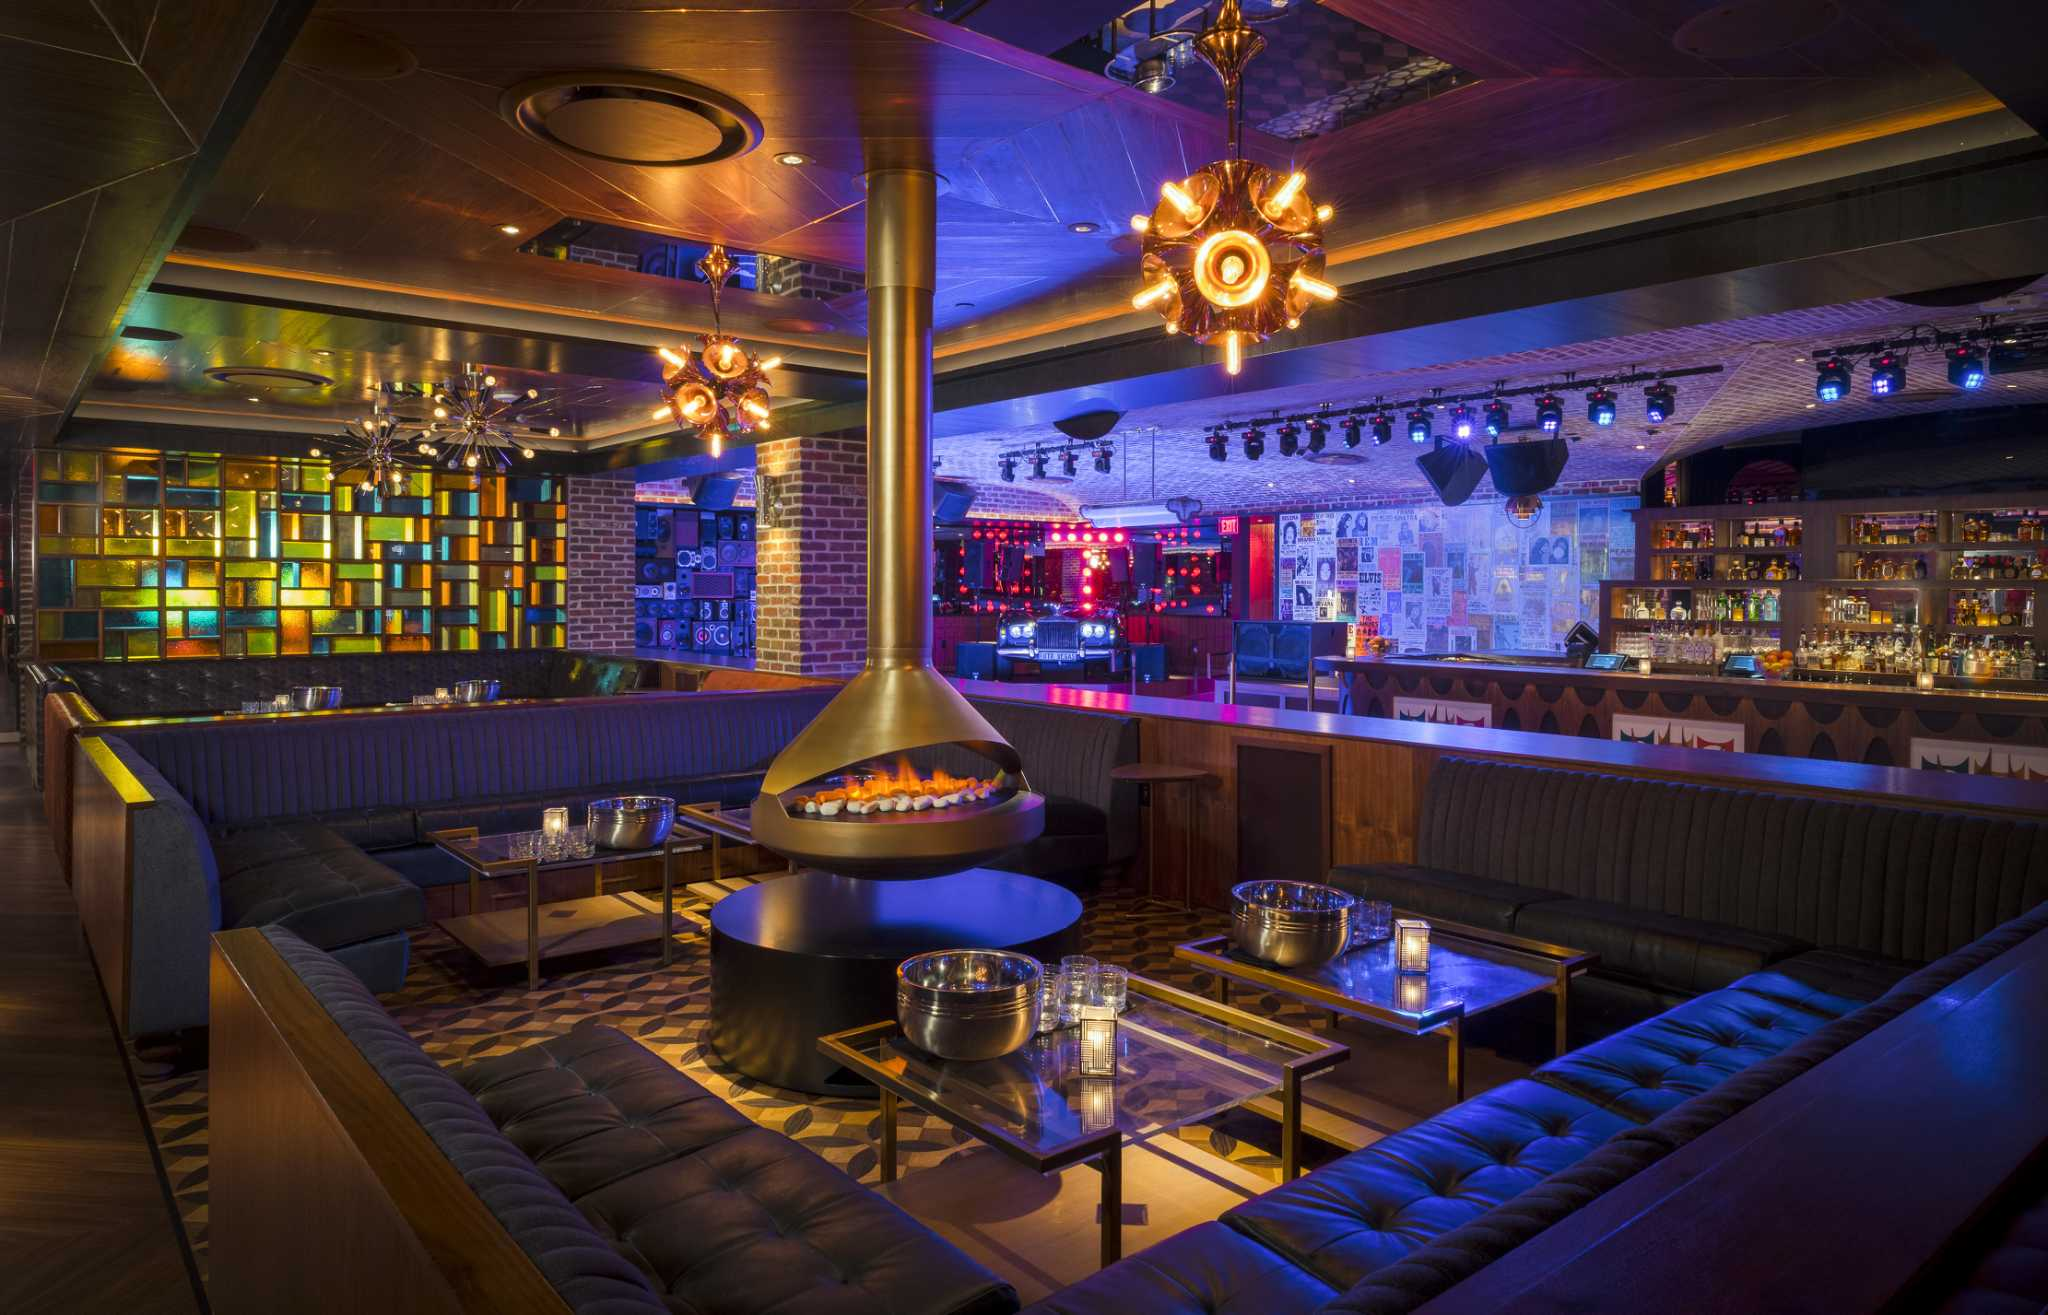 Cucina Las Vegas Las Vegas Sizzles With New Hotels Restaurants Nightclubs And